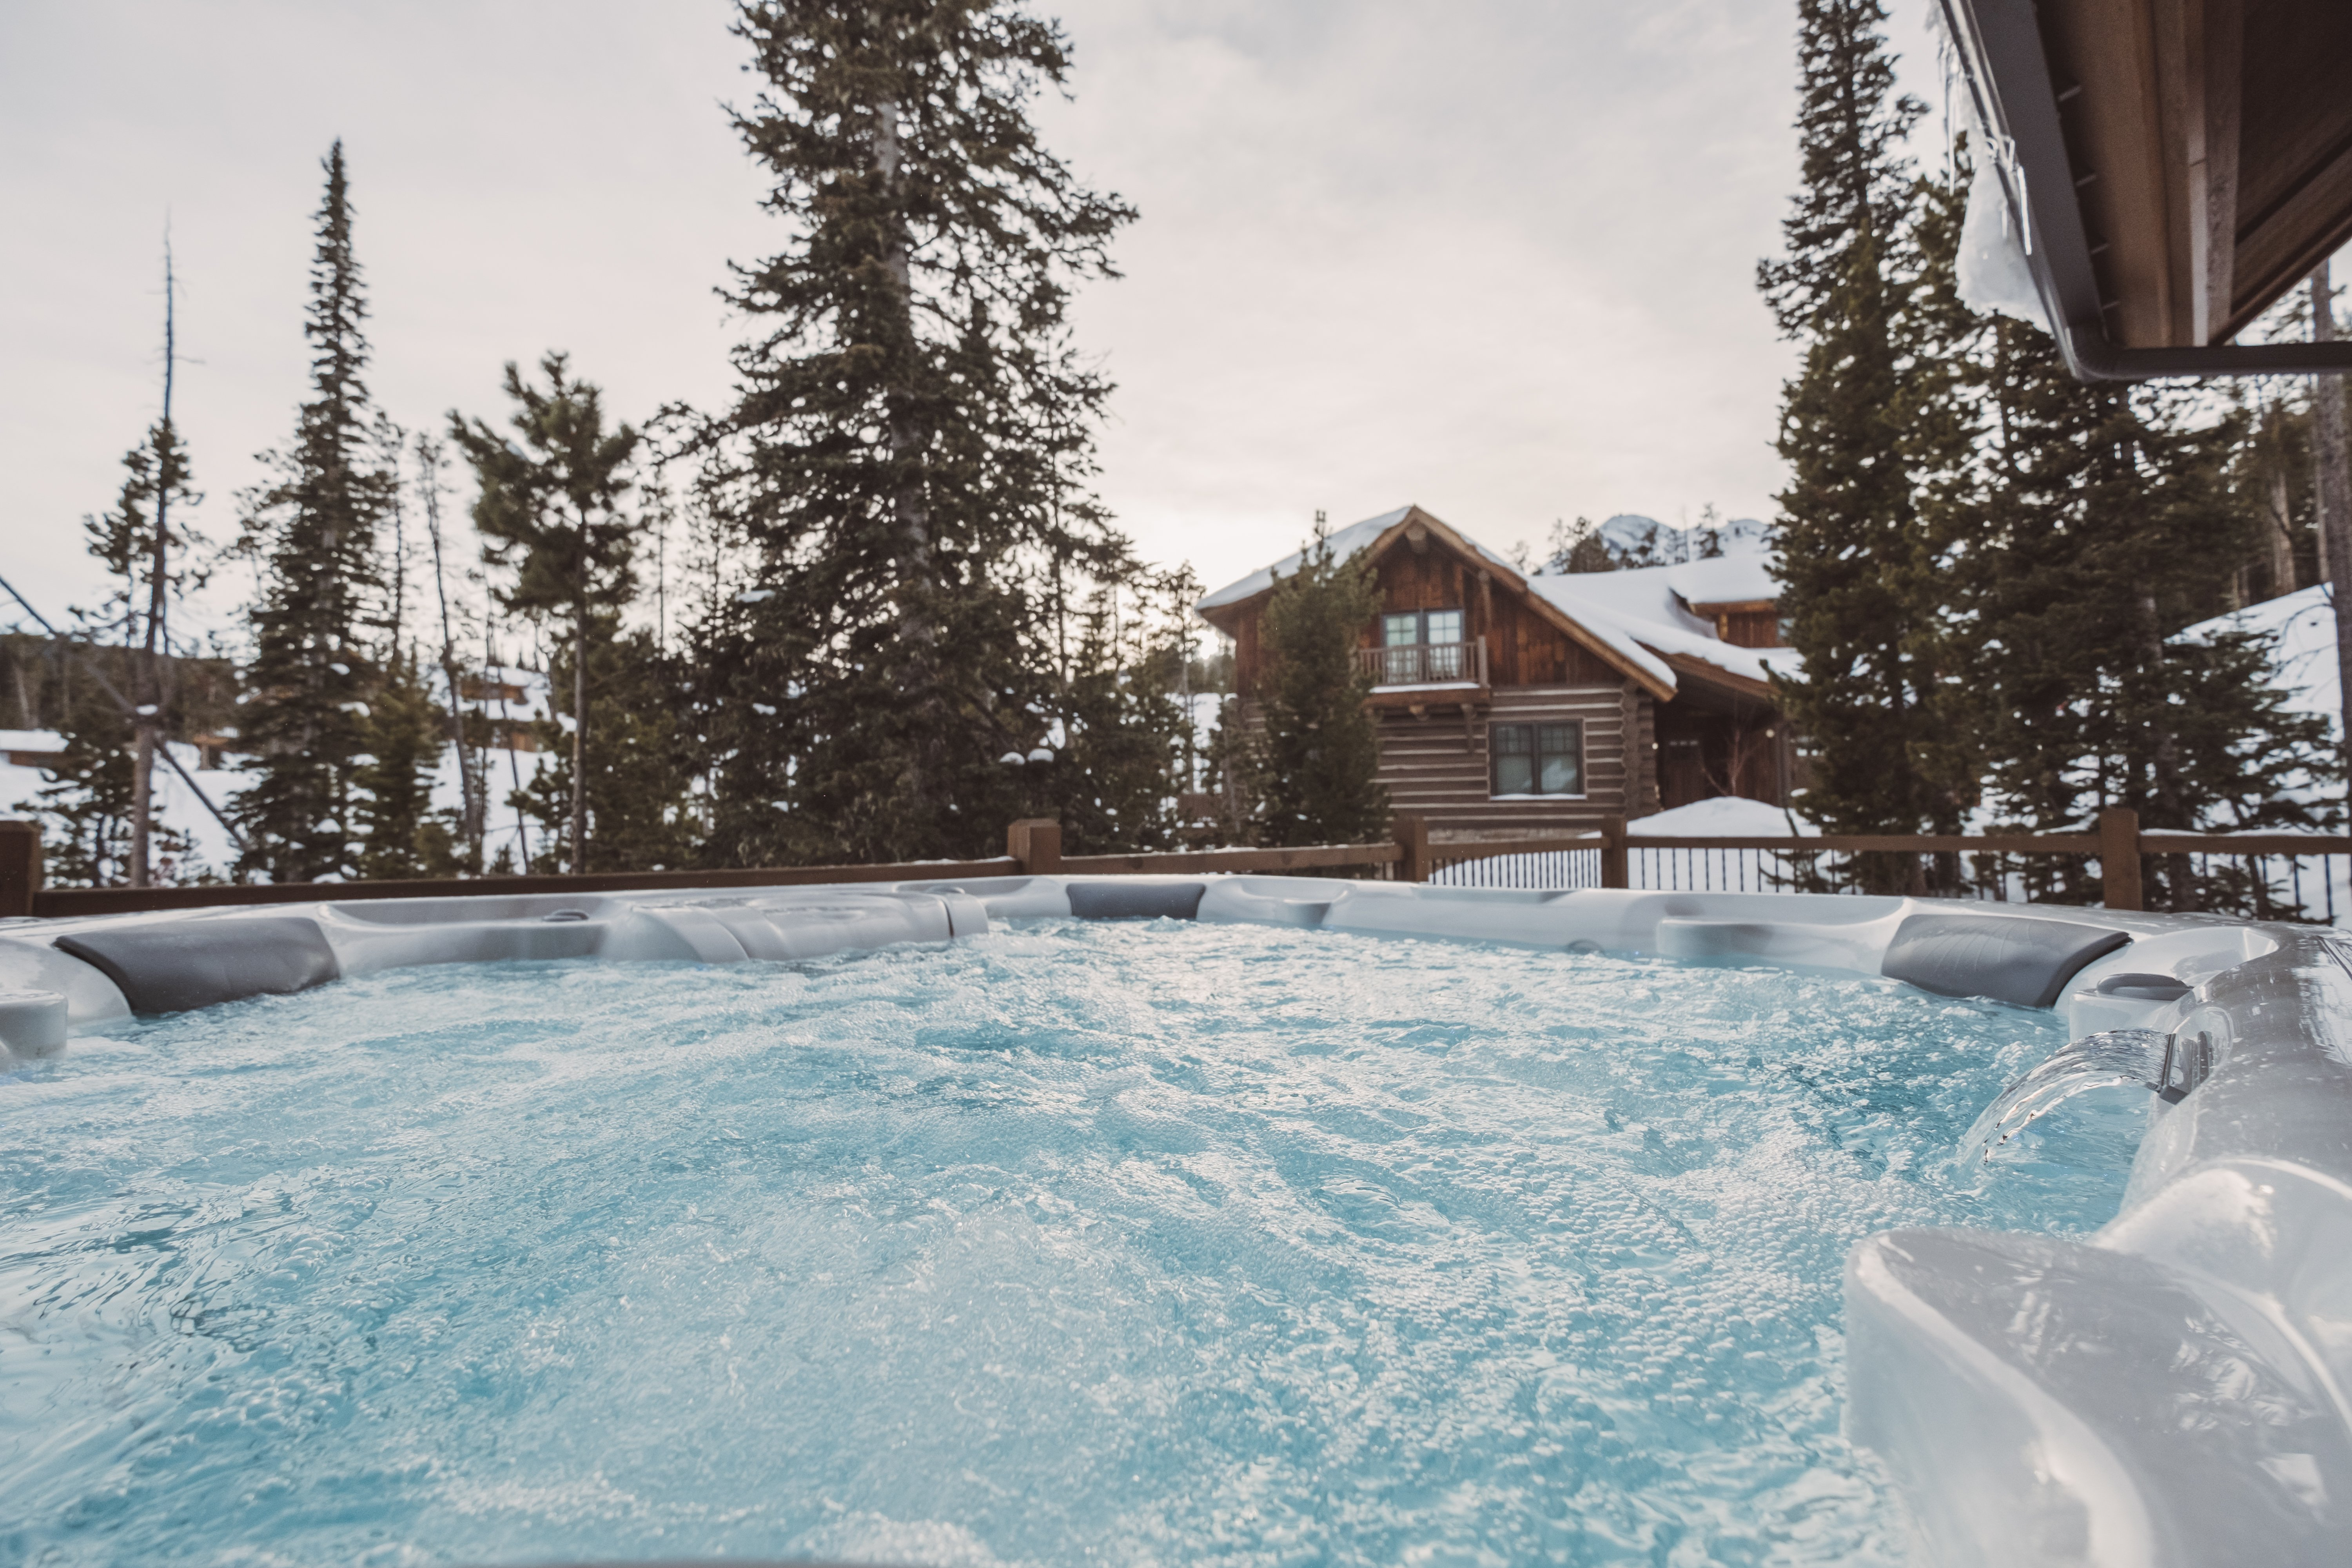 Get out of the arctic and into a spa